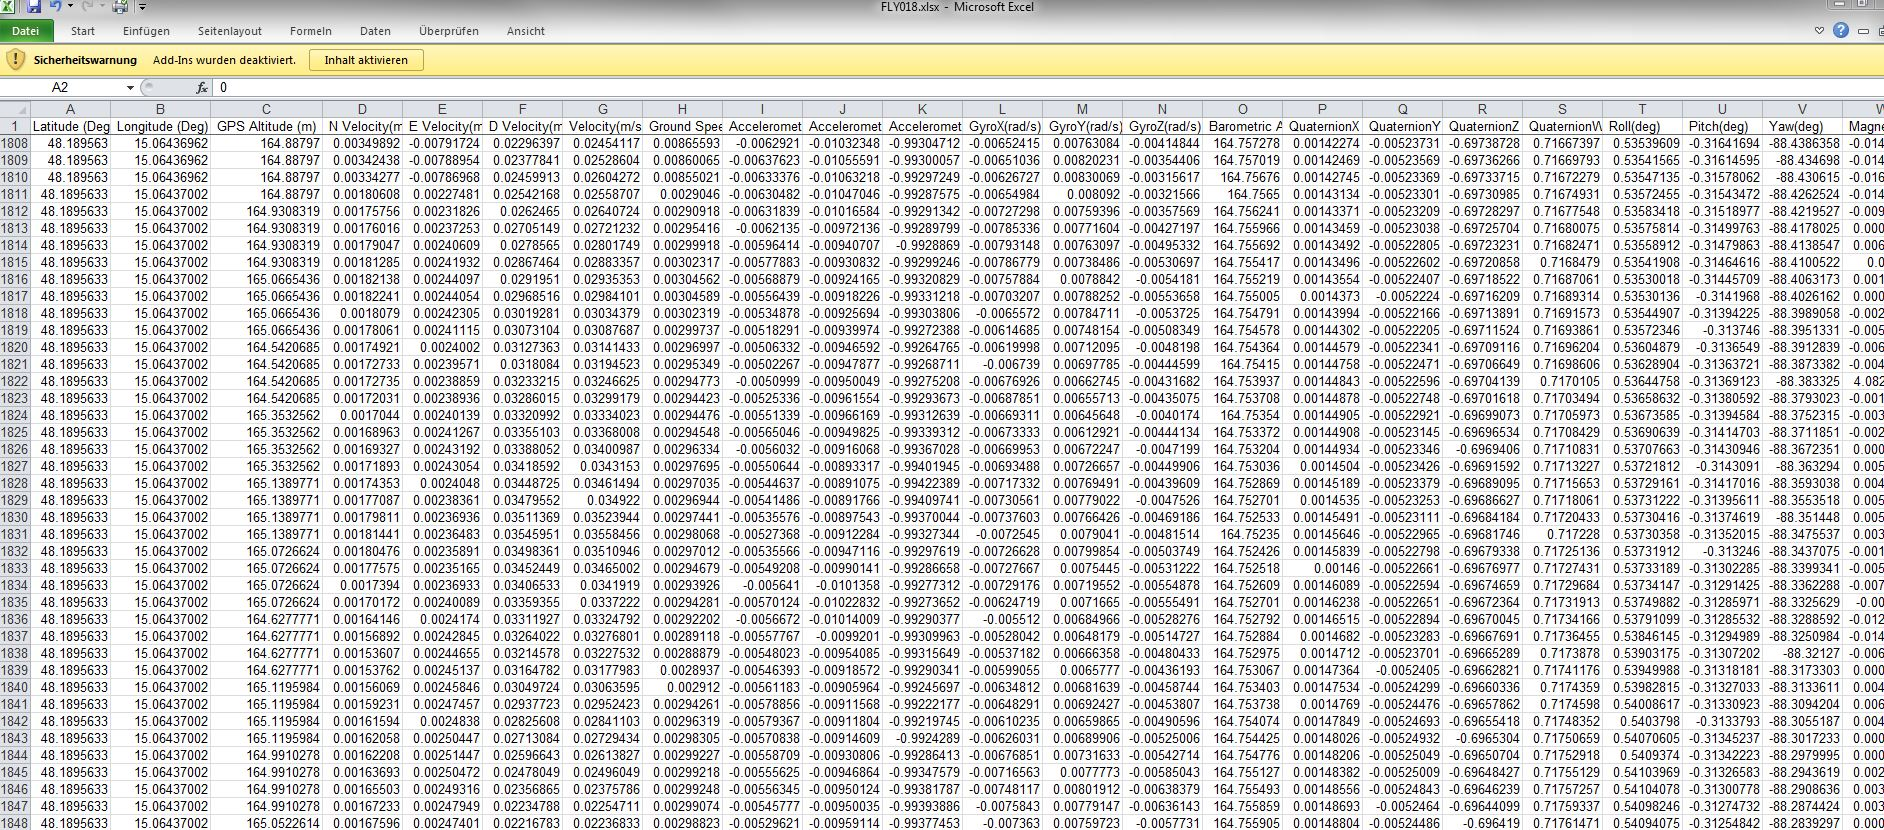 Can You Get Latitude And Longitude From The Log Files